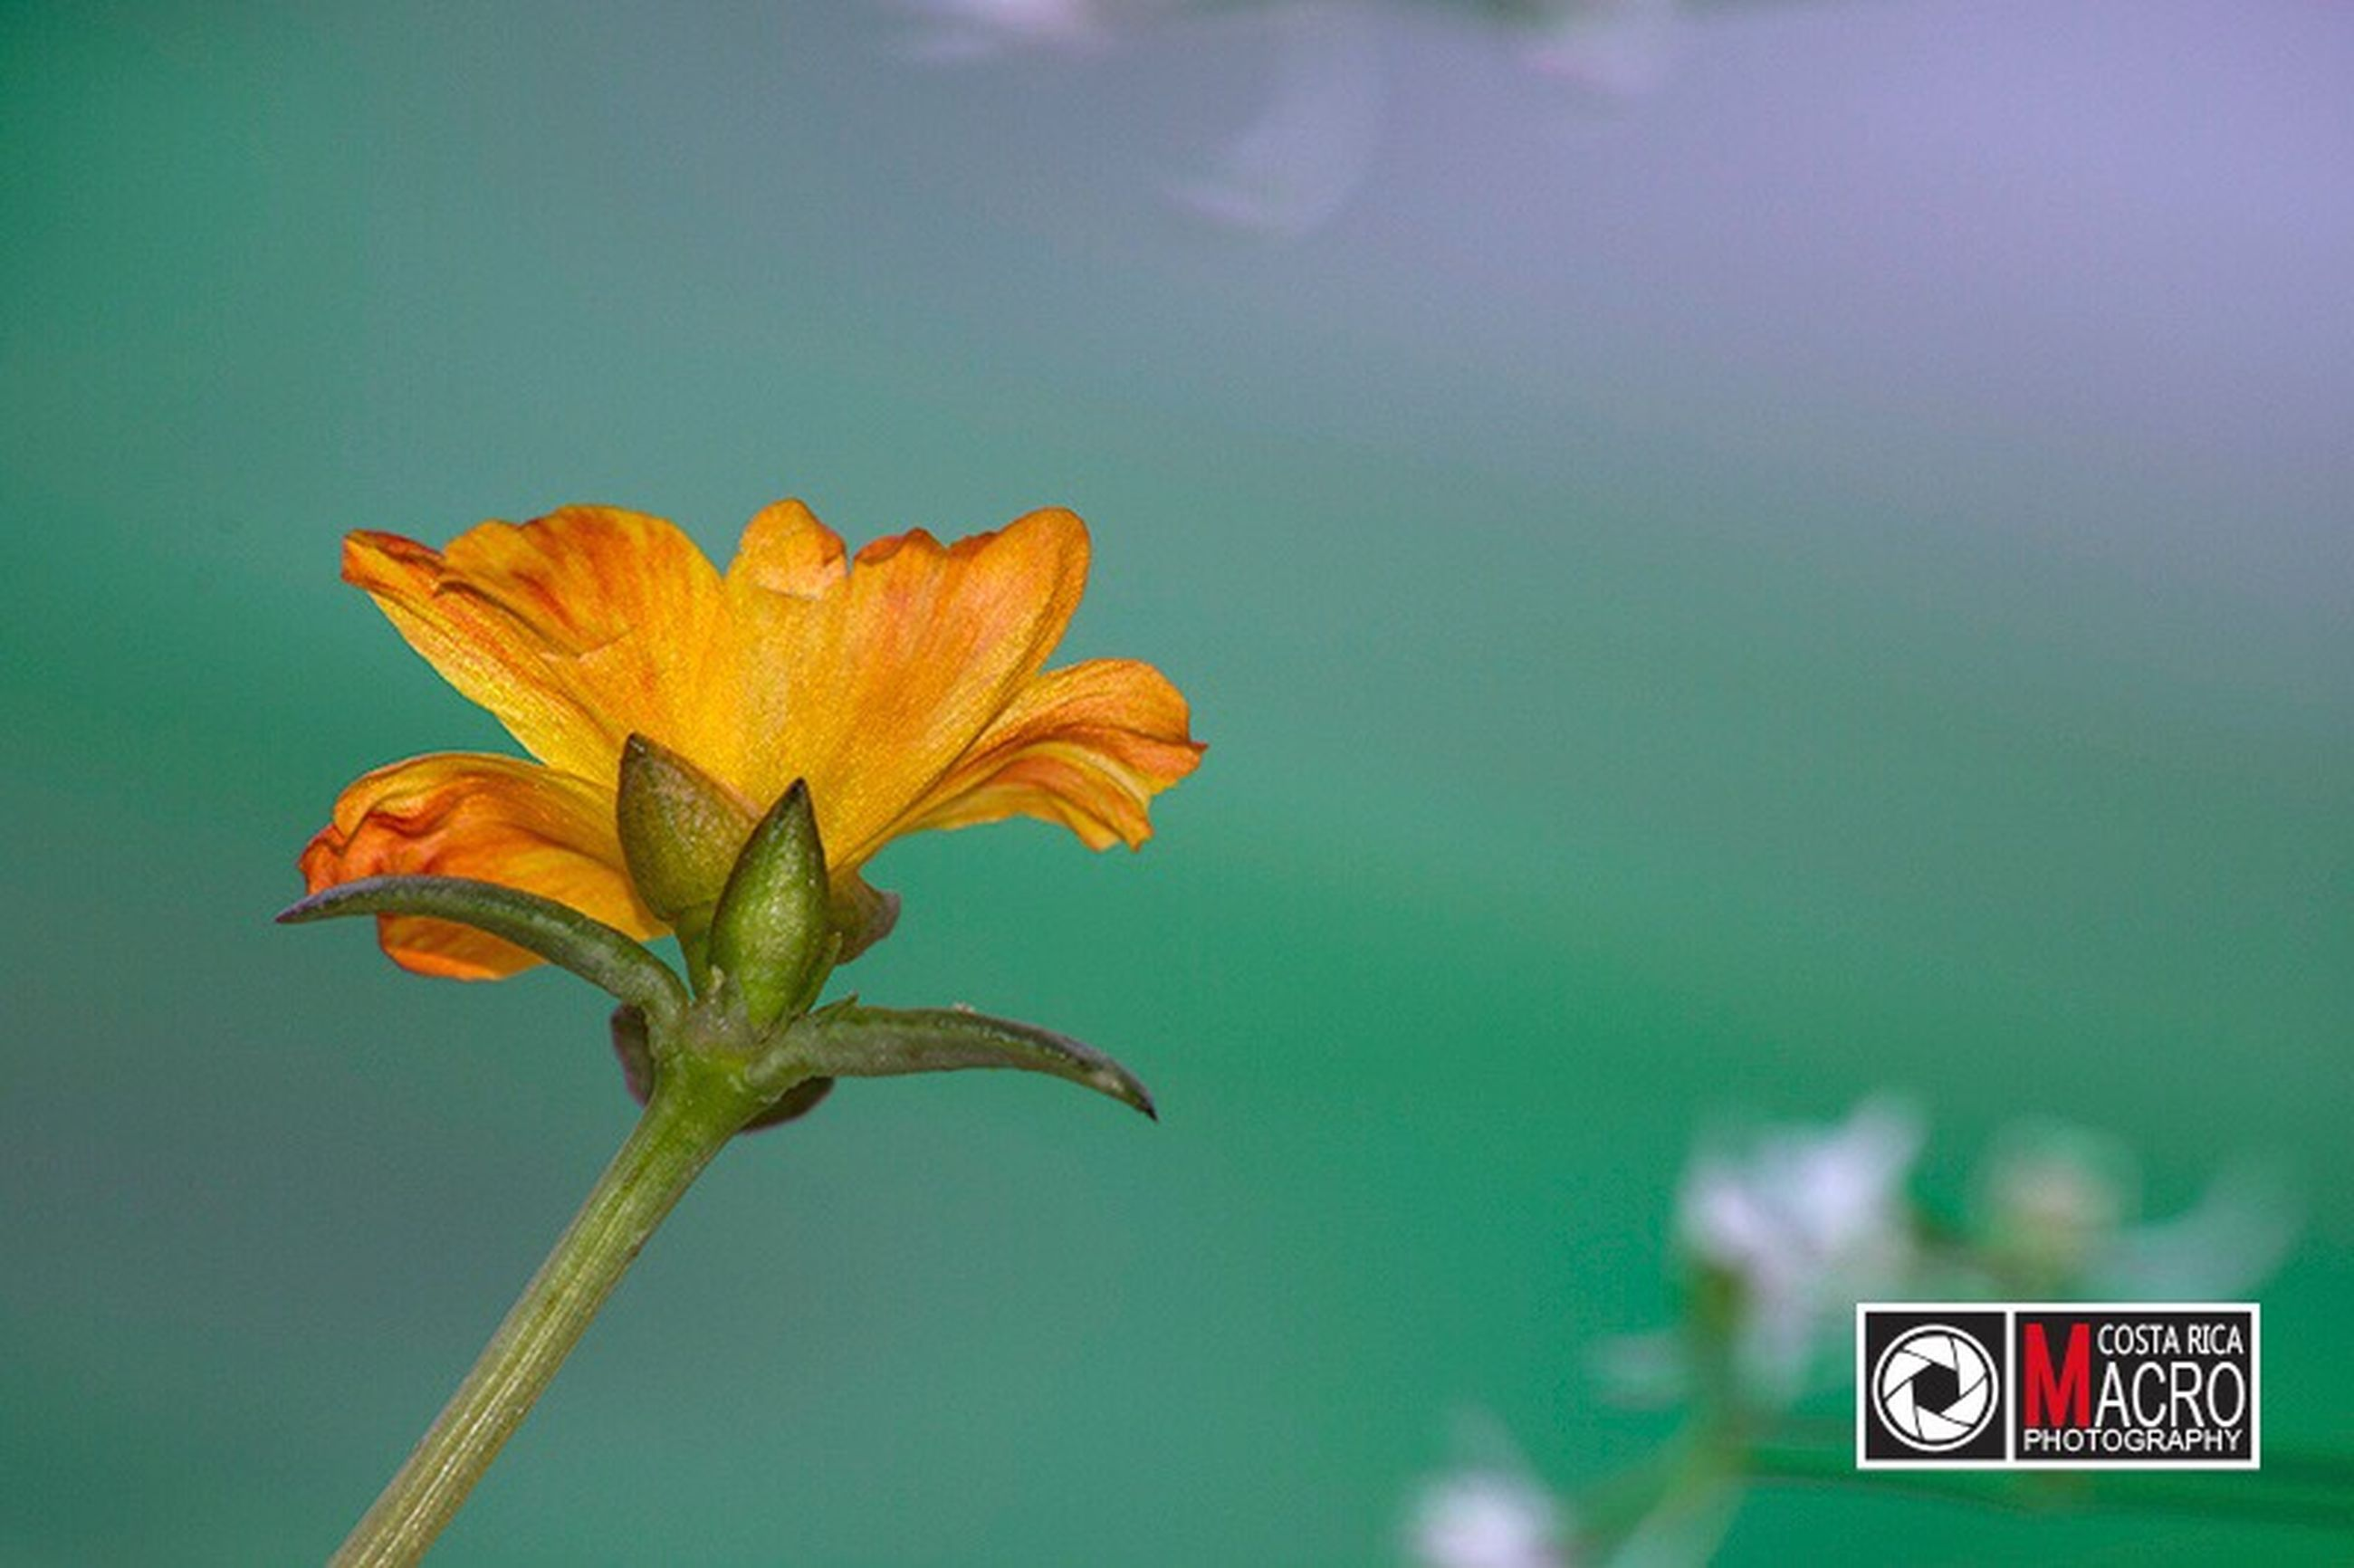 nature, close-up, beauty in nature, leaf, day, no people, outdoors, fragility, growth, flower, sky, water, freshness